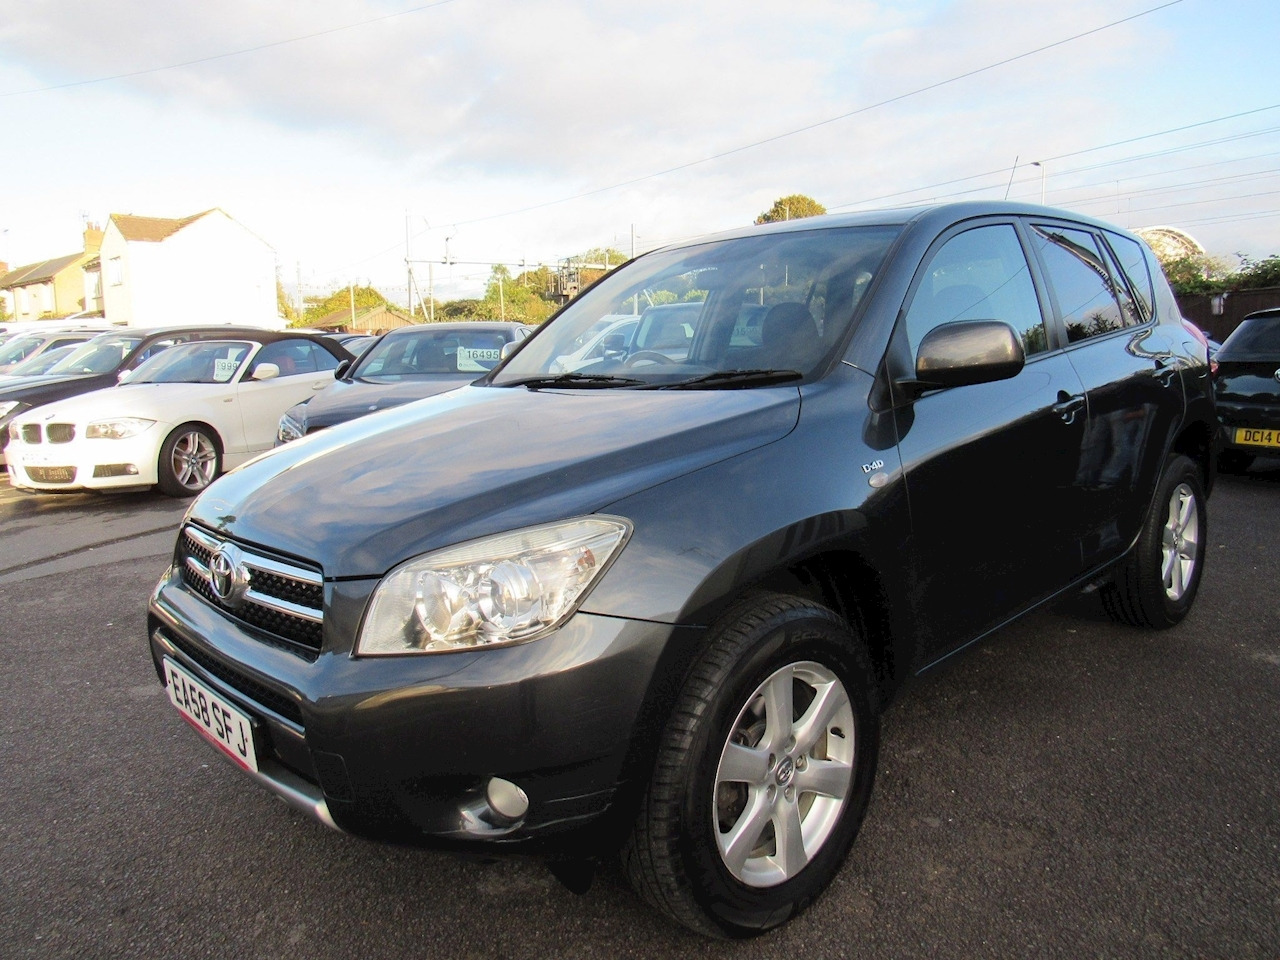 Toyota Rav4 D-4D Xtr Estate 2.2 Manual Diesel